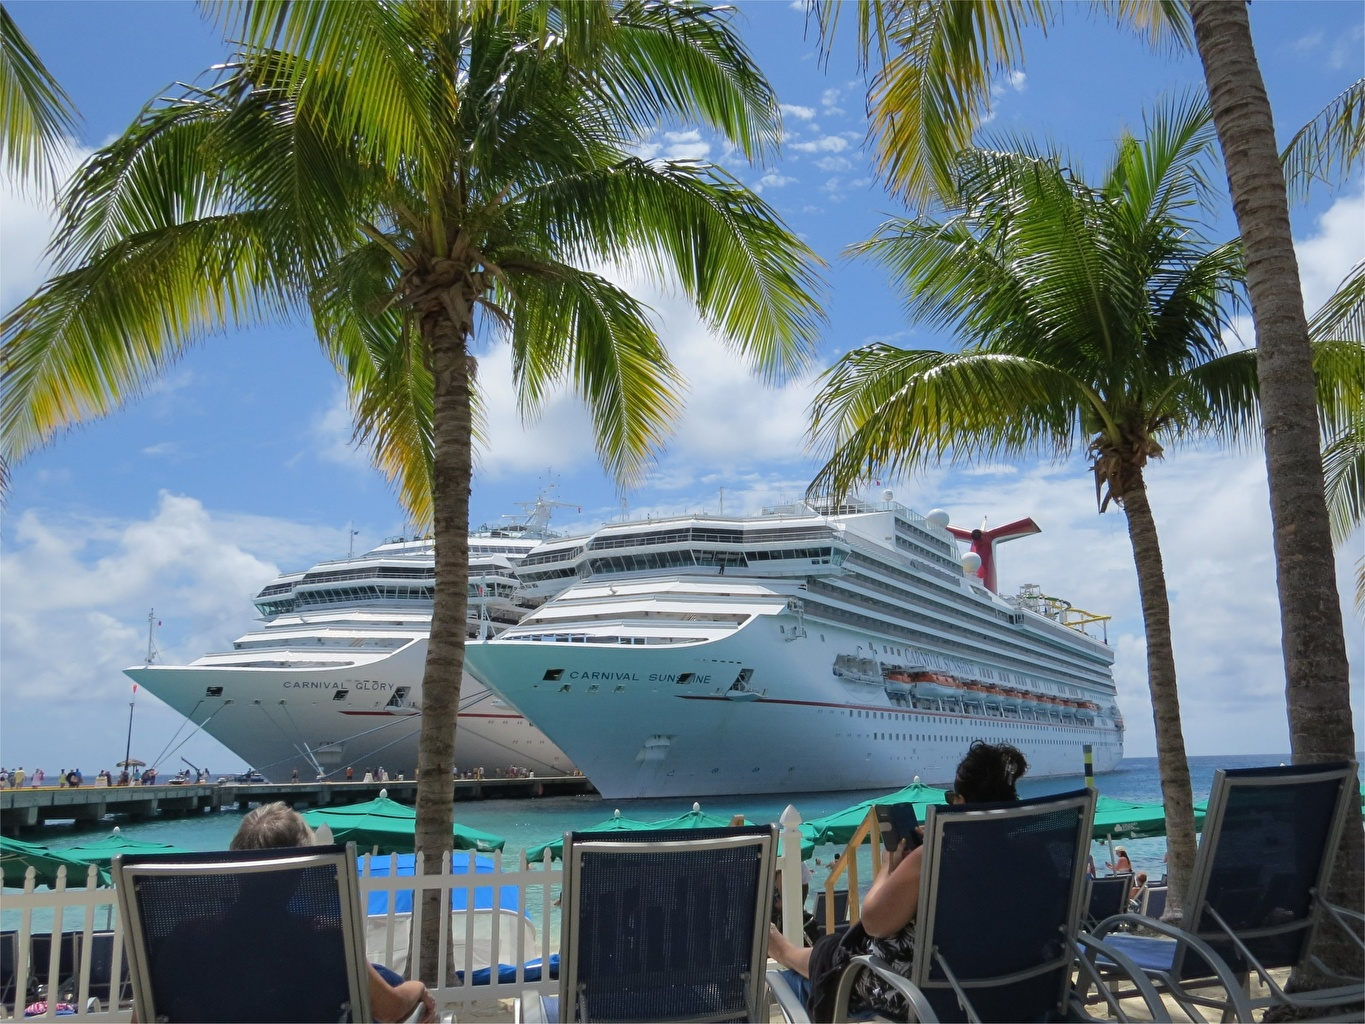 Images Cruise liner Spa town Bahamas, Carnival Glory, Carnival